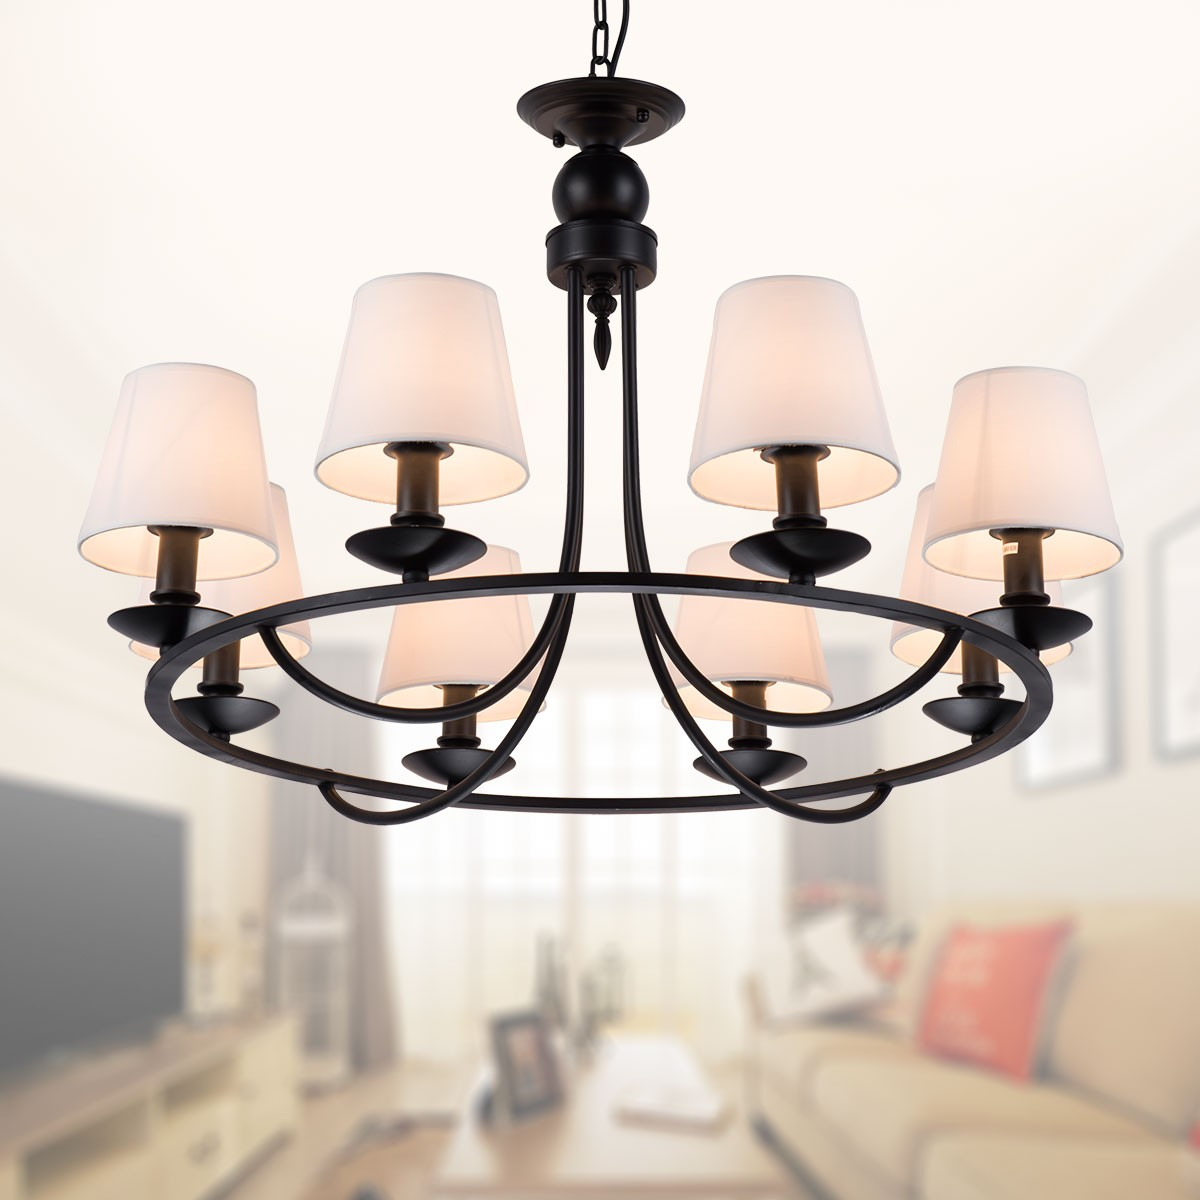 8 Light Black Wrought Iron Chandelier With Cloth Shades (DK 2027 8A